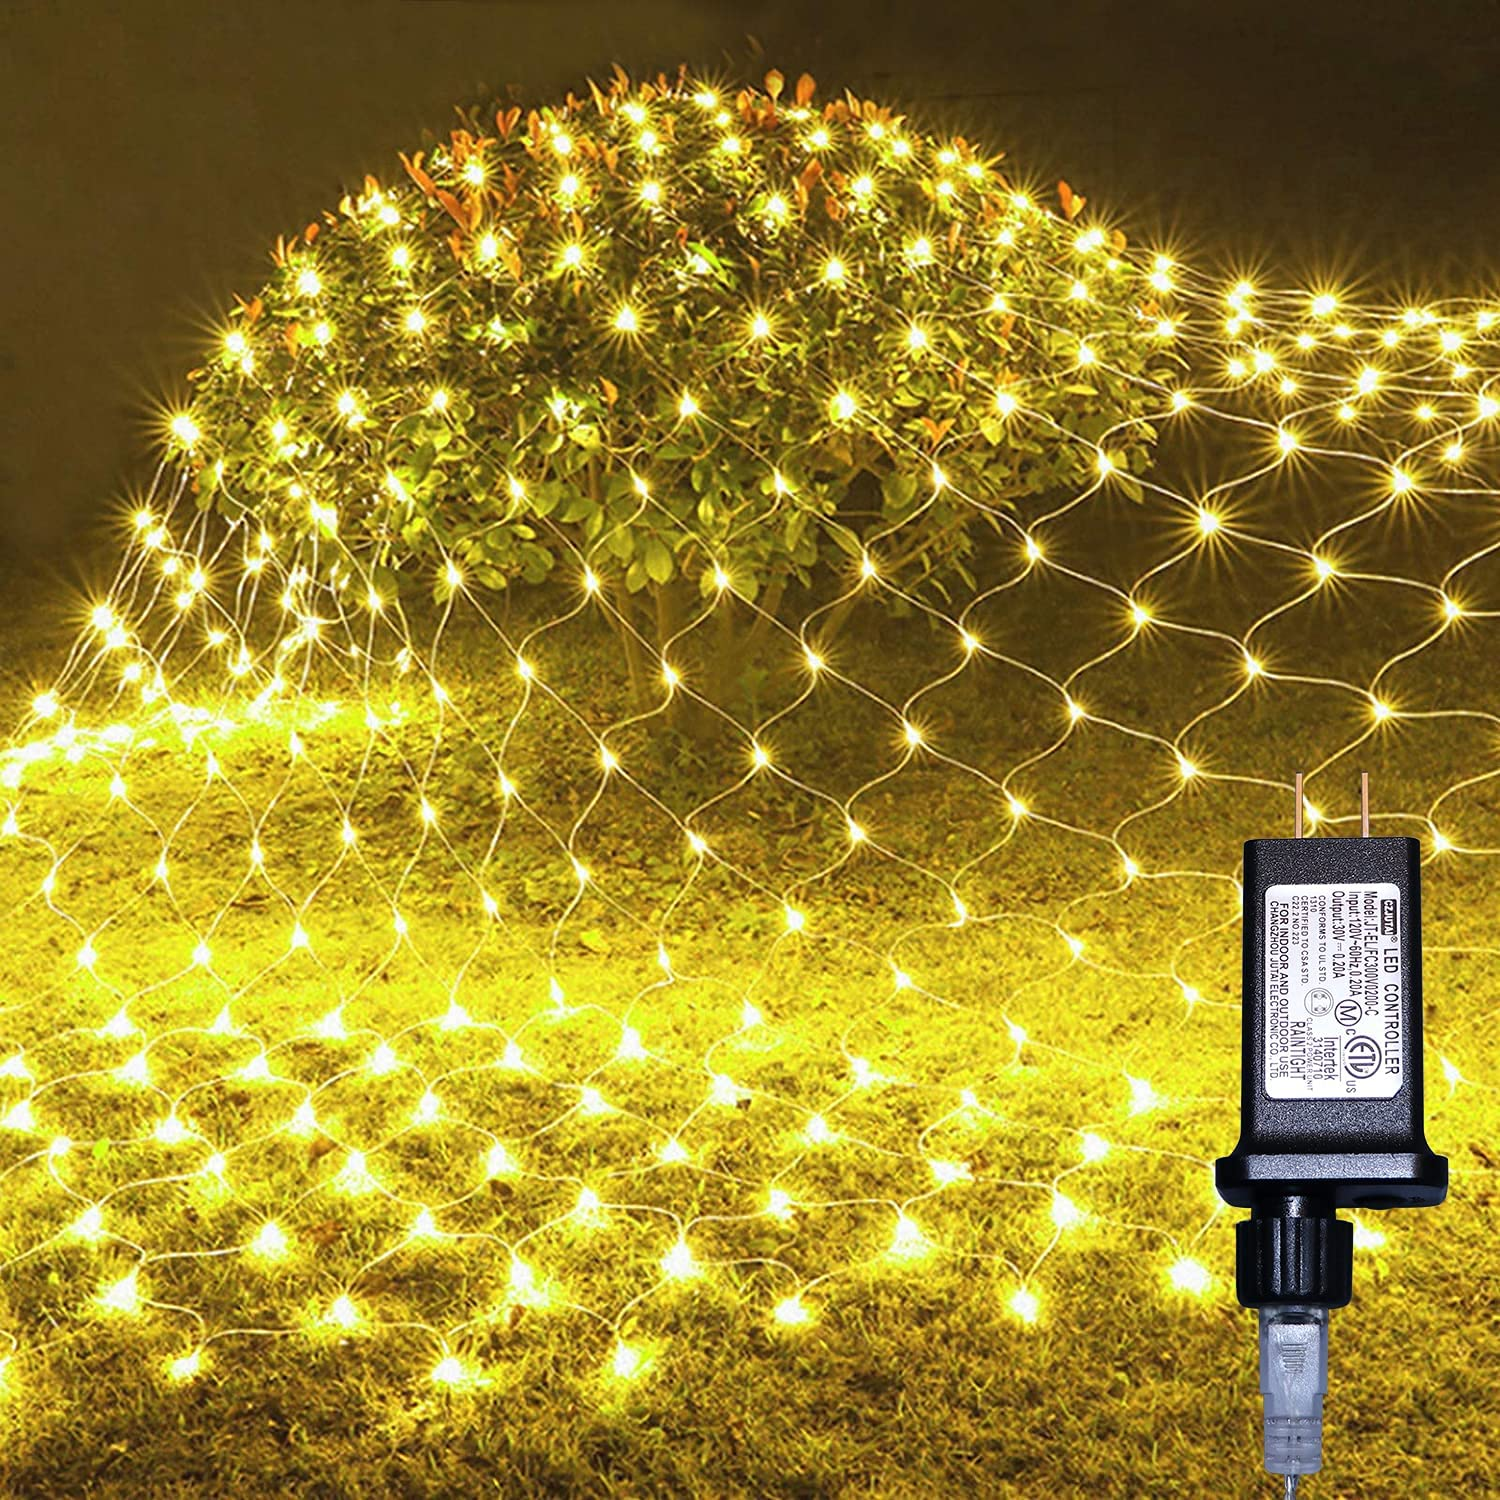 Net Mesh String Fairy Lights 200 LEDs, 6.6 Ft x 9.8Ft, 8 Lighting Modes, Outdoor Transparency Light for Christmas Tree Decoration, Party, Wedding ( Warm White )